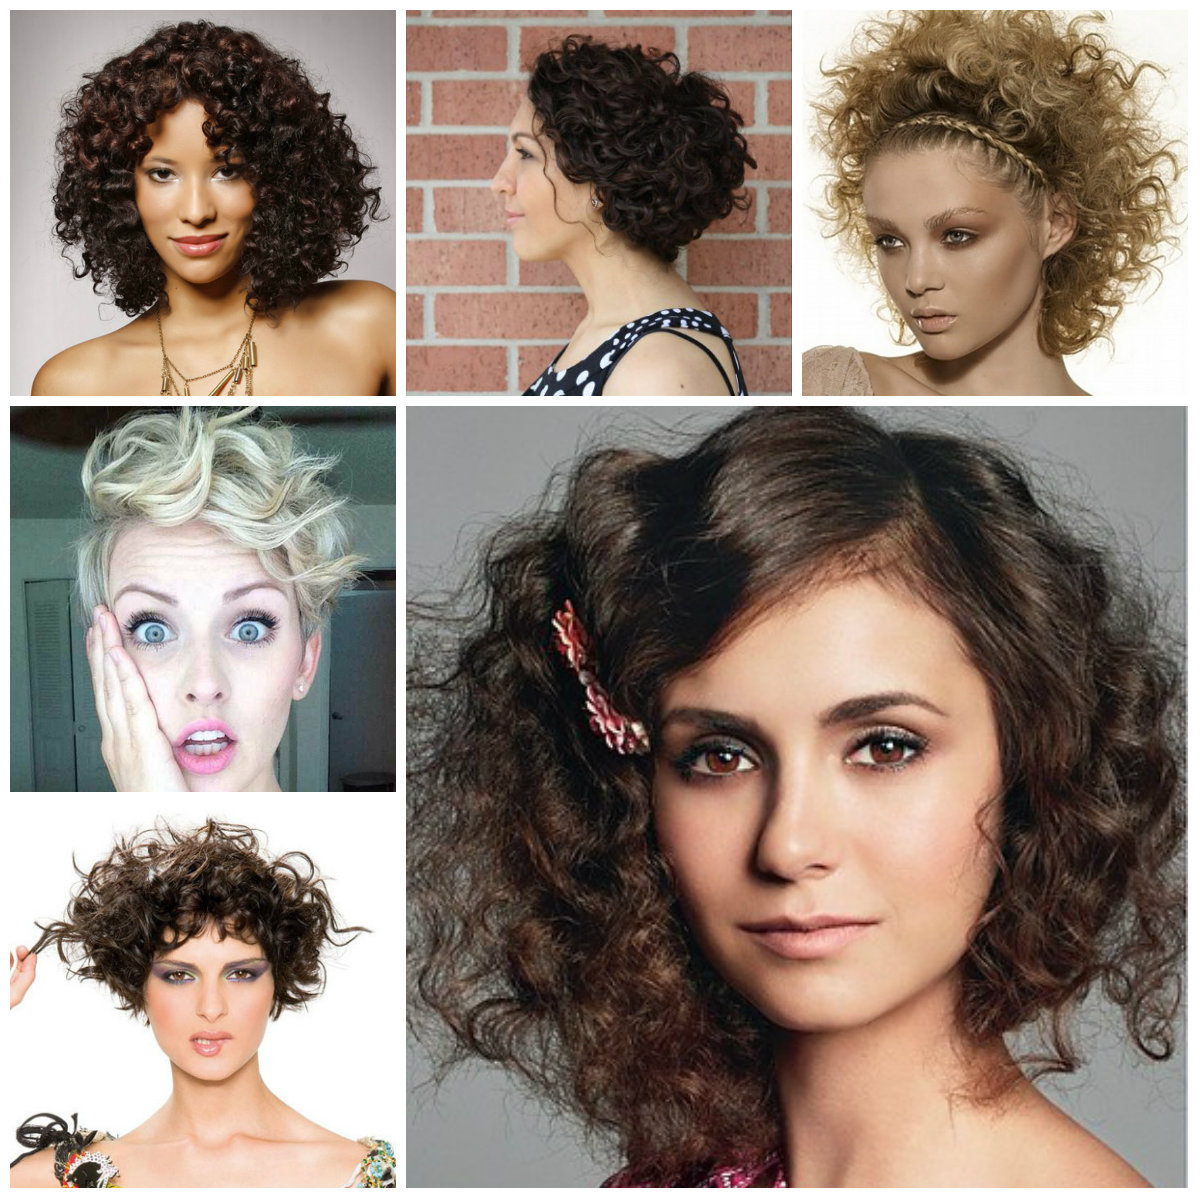 2016 Trendy Hairstyles For Naturally Curly Hair 2019 Haircuts